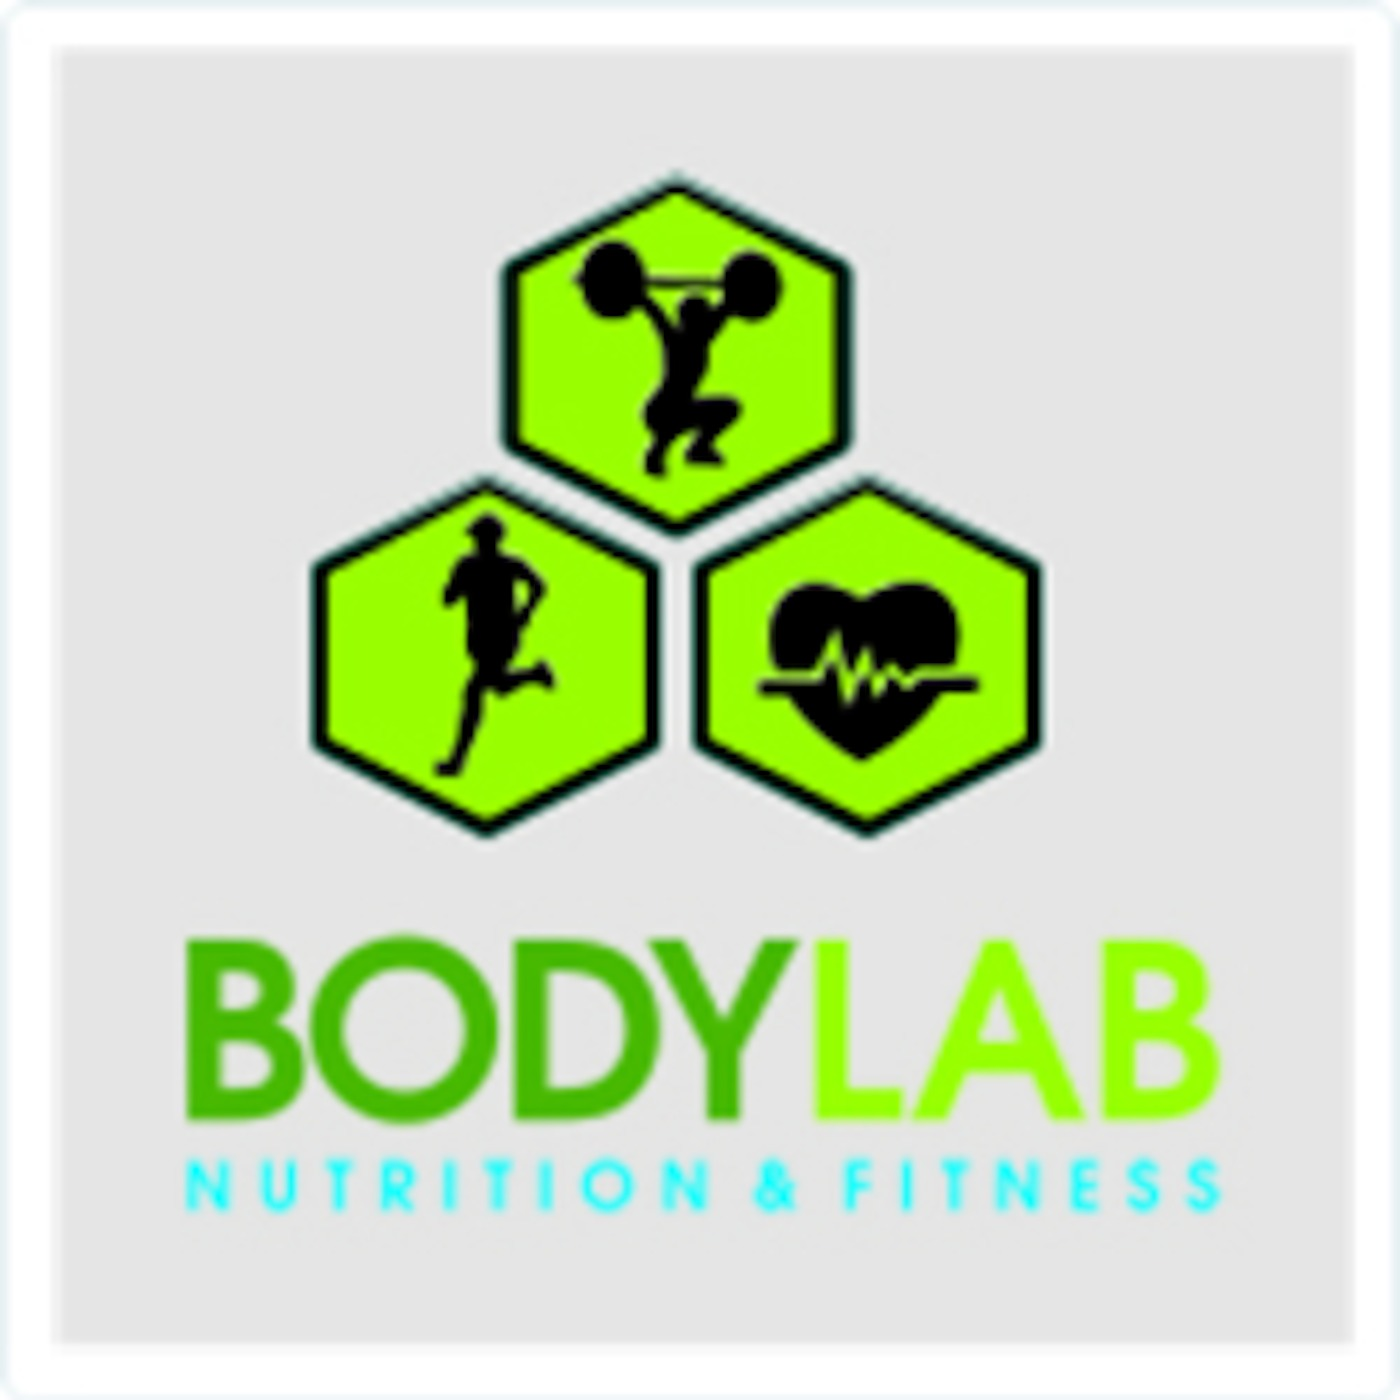 Bodylab Nutrition & Fitness' Podcast